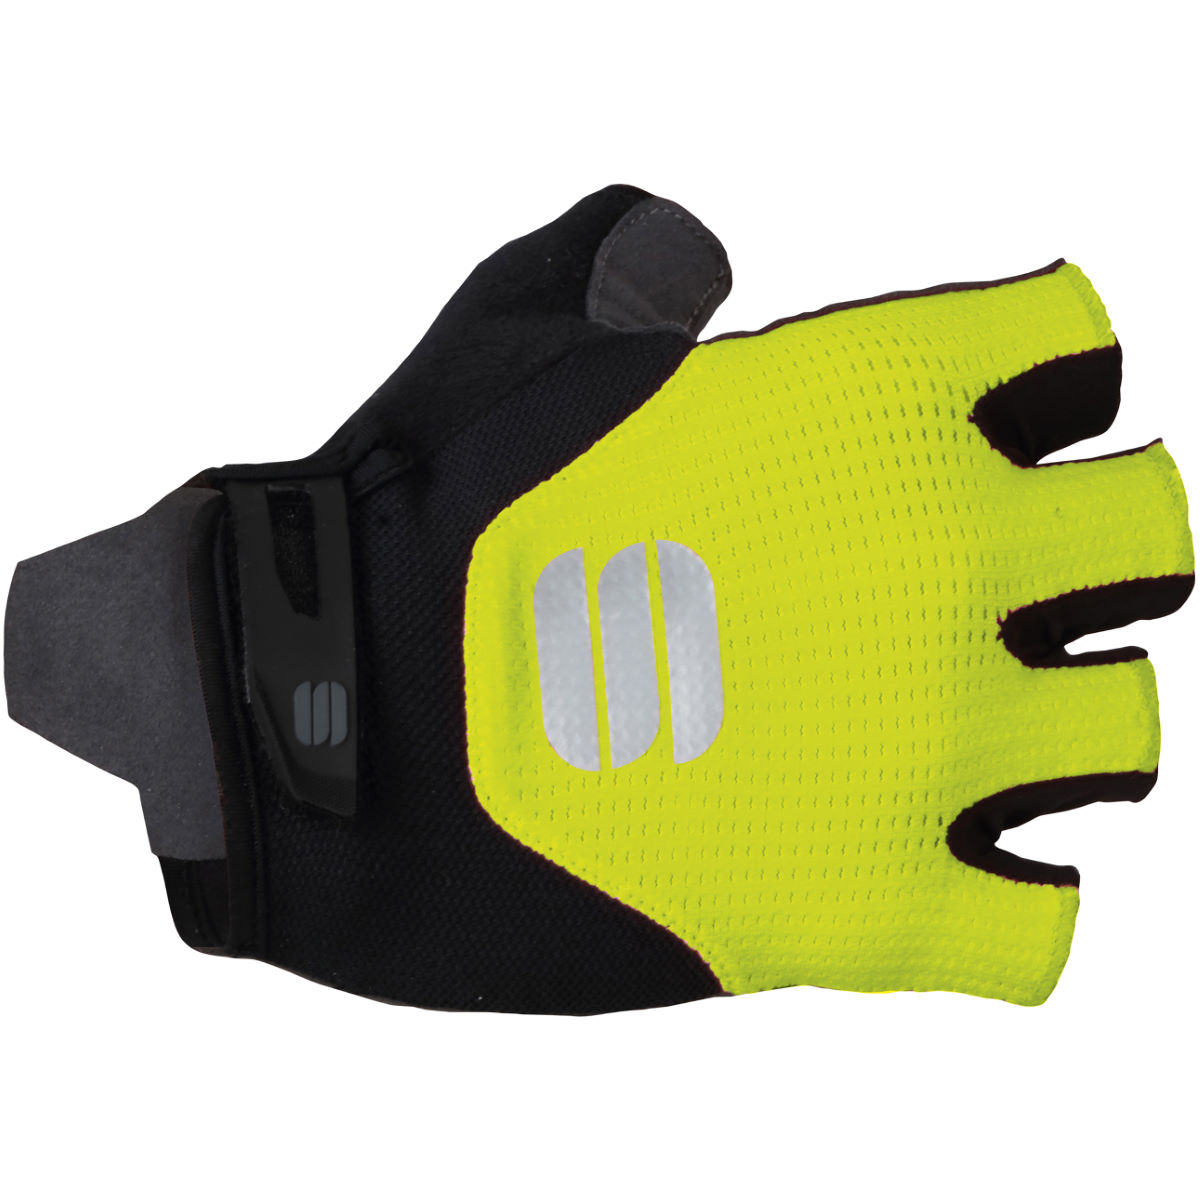 Sportful Neo Cycling Gloves - S Black/yellow  Gloves